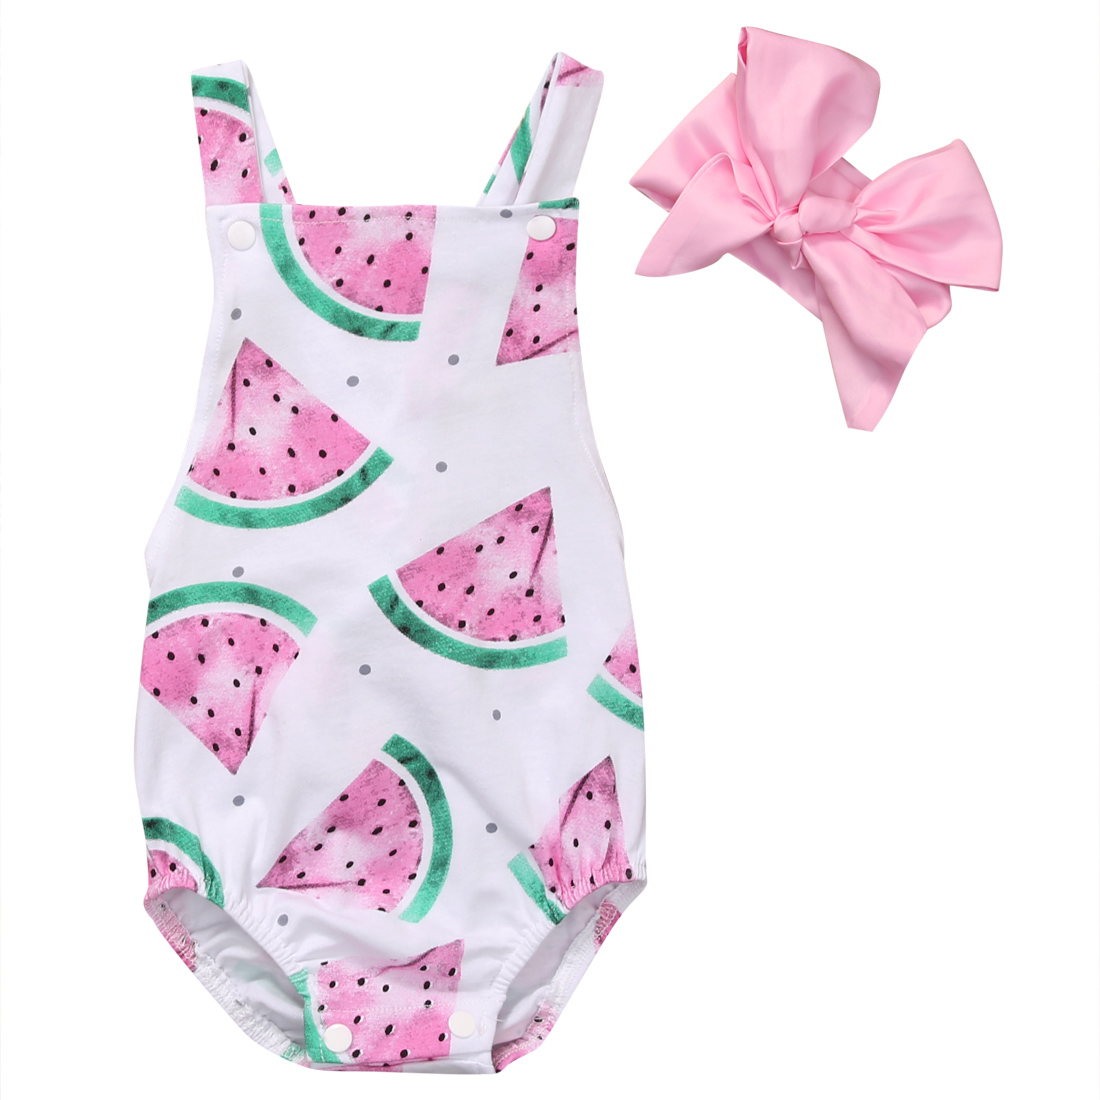 2017 Summer Baby Girls Clothes Sleeveless Watermelon Infant Bebes Romper Backless Halter Jumpsuit +Headband 2pcs Outfit Sunsuit newborn baby backless floral jumpsuit infant girls romper sleeveless outfit